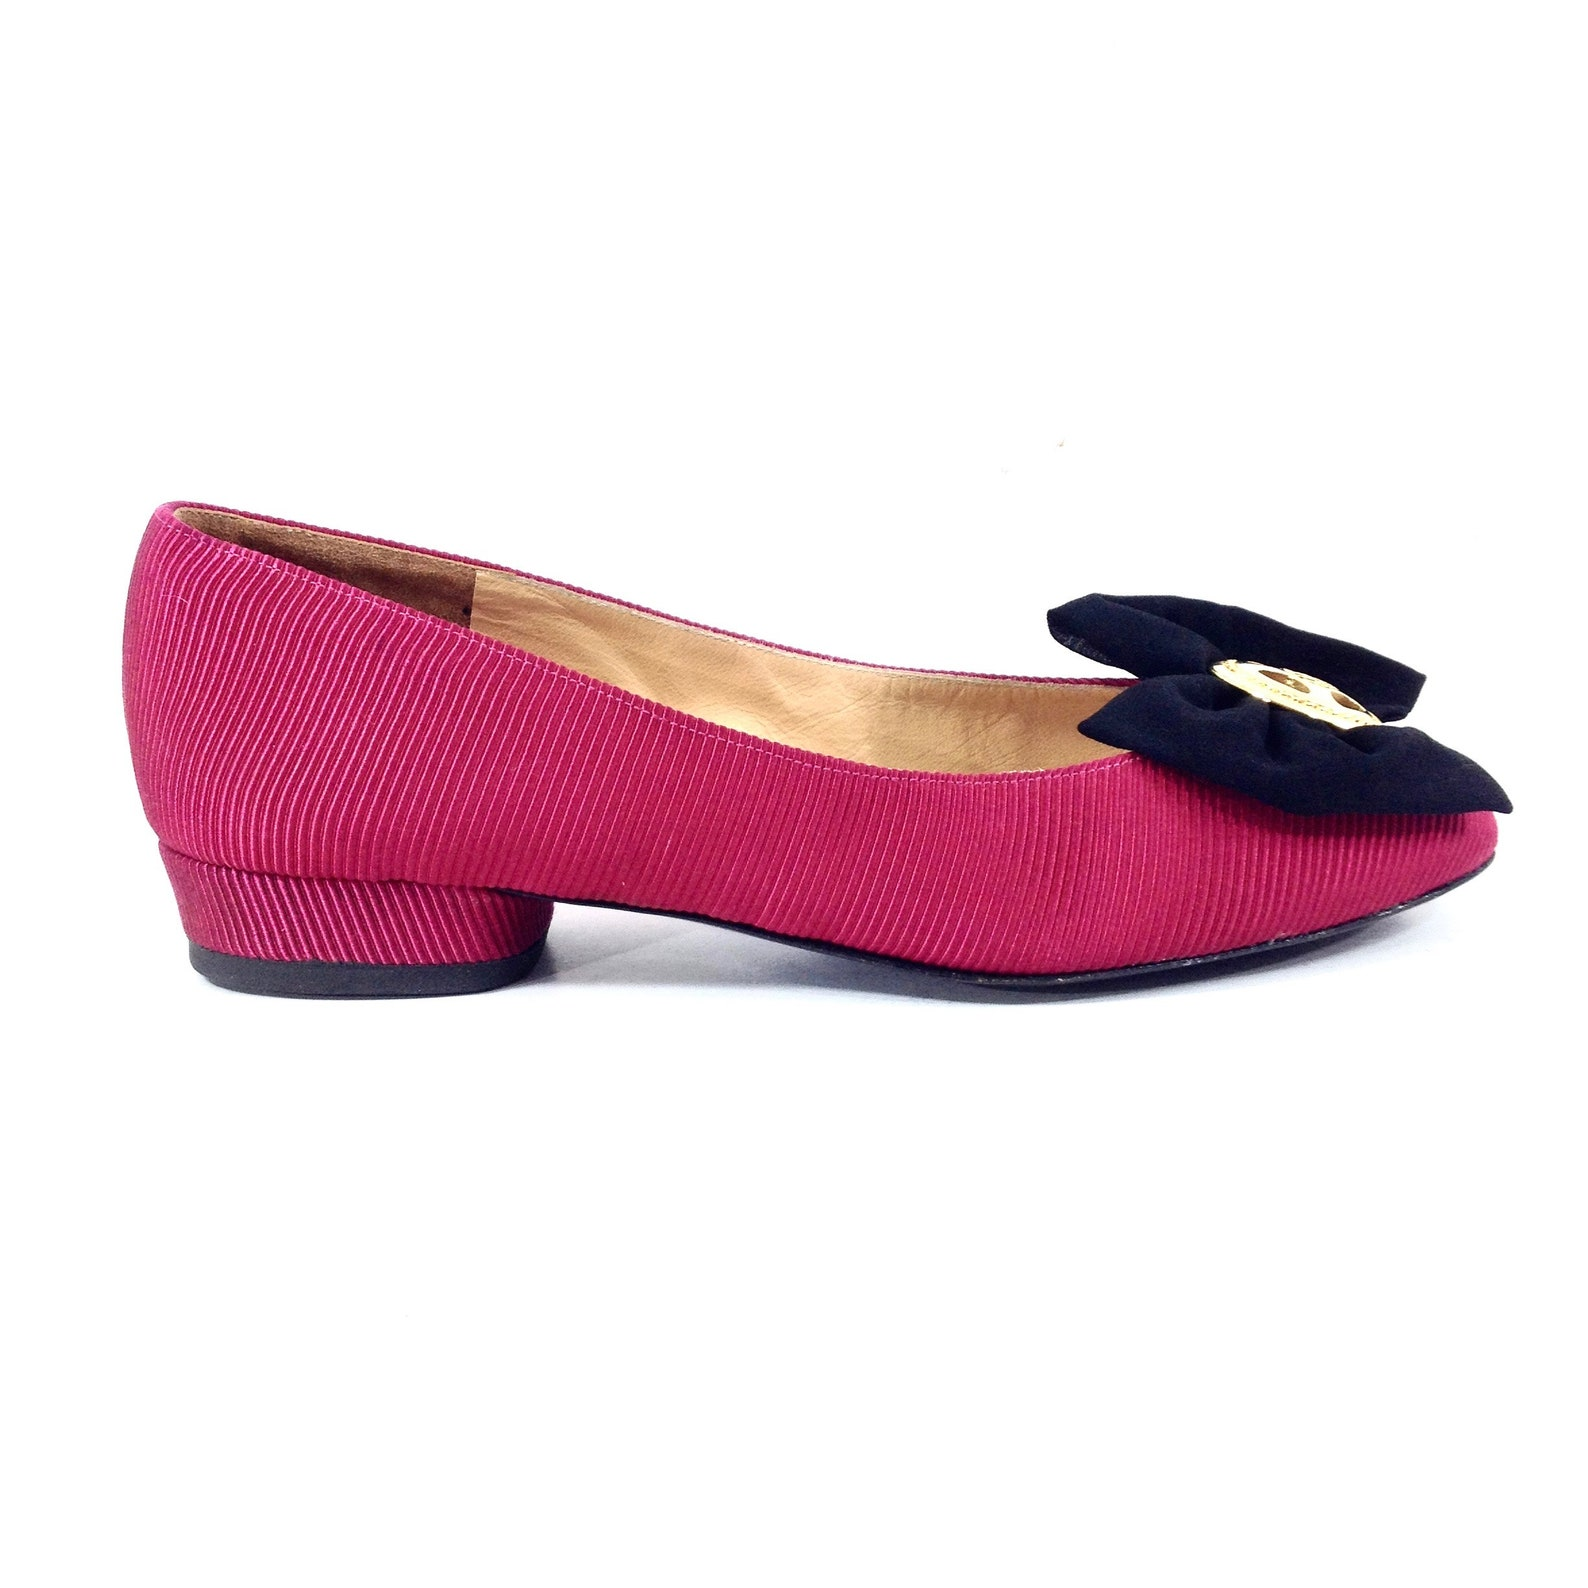 charles jourdan red fuchsia silk ballet flats 37/ 6.5us